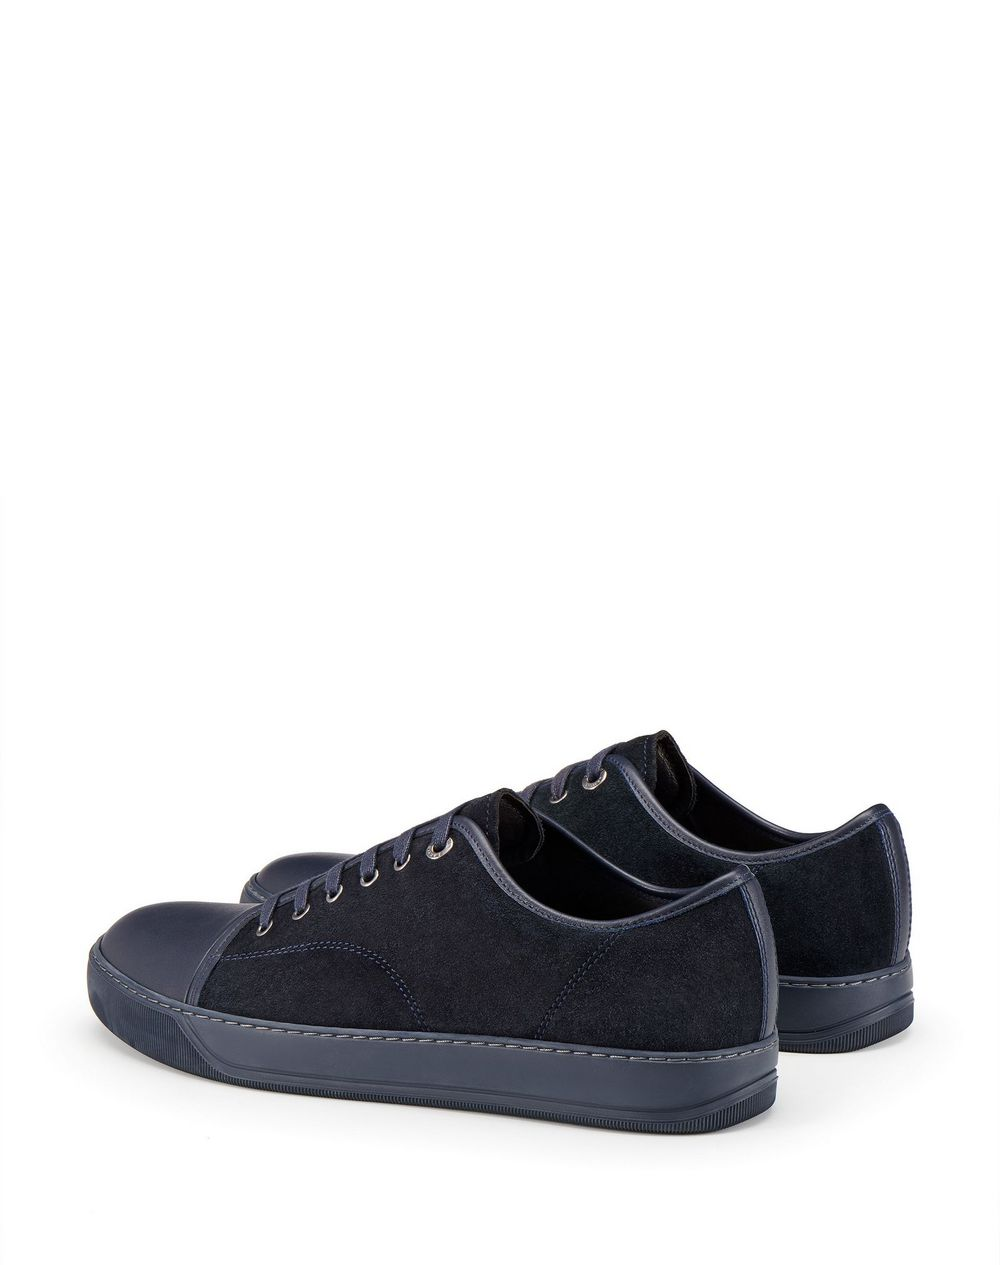 DBB1 SUEDE AND LEATHER SNEAKERS - Lanvin